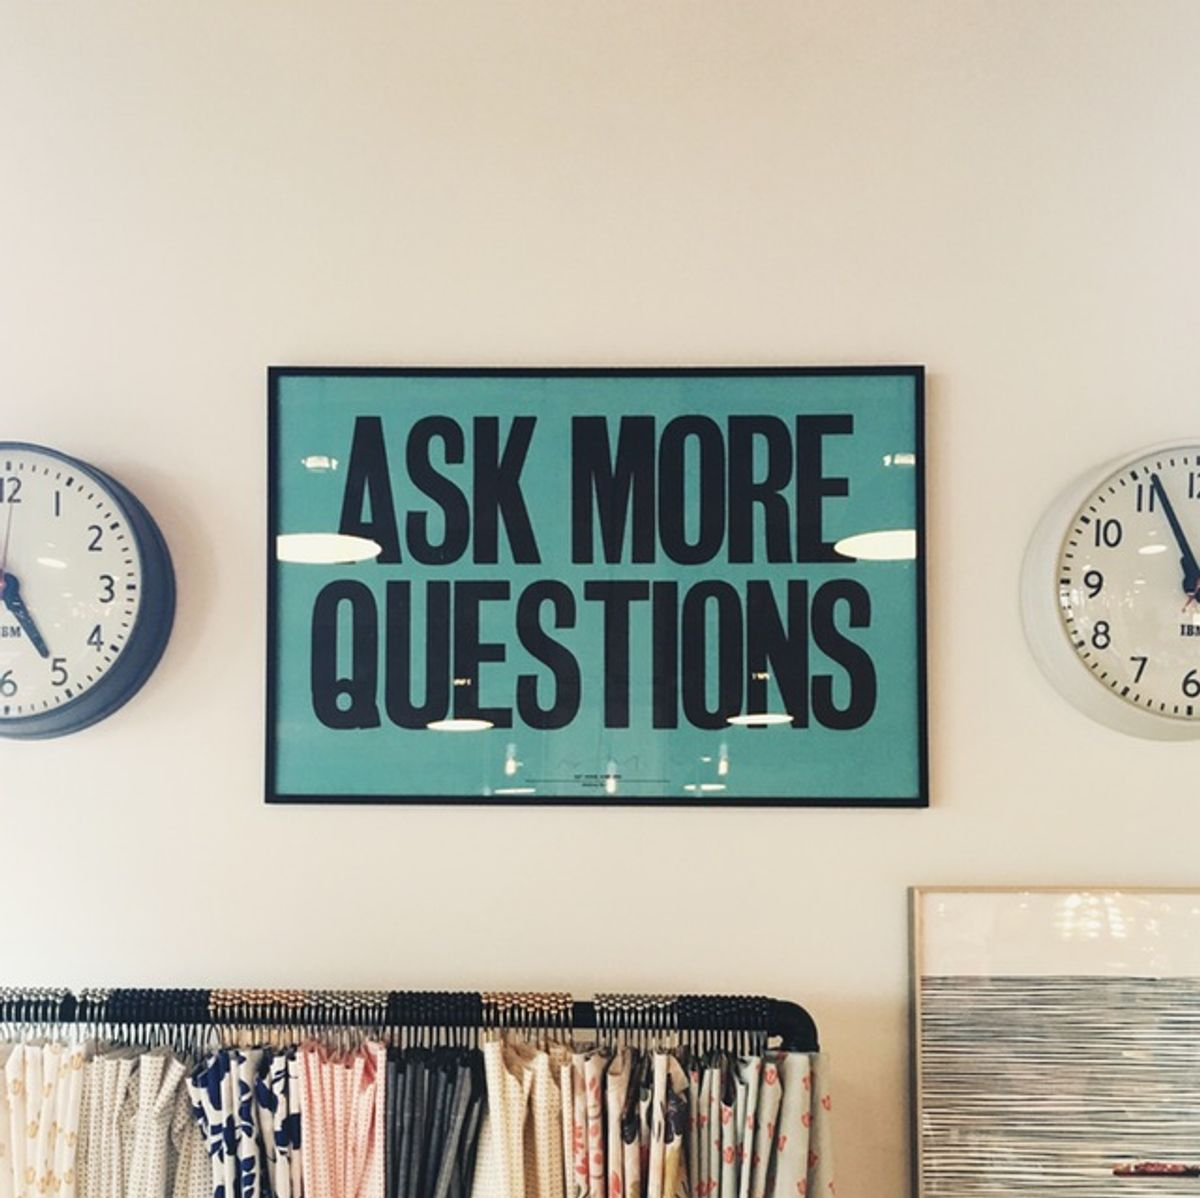 20 Questions: A Short List Of The Best Questions To Ask To Get To Know Someone